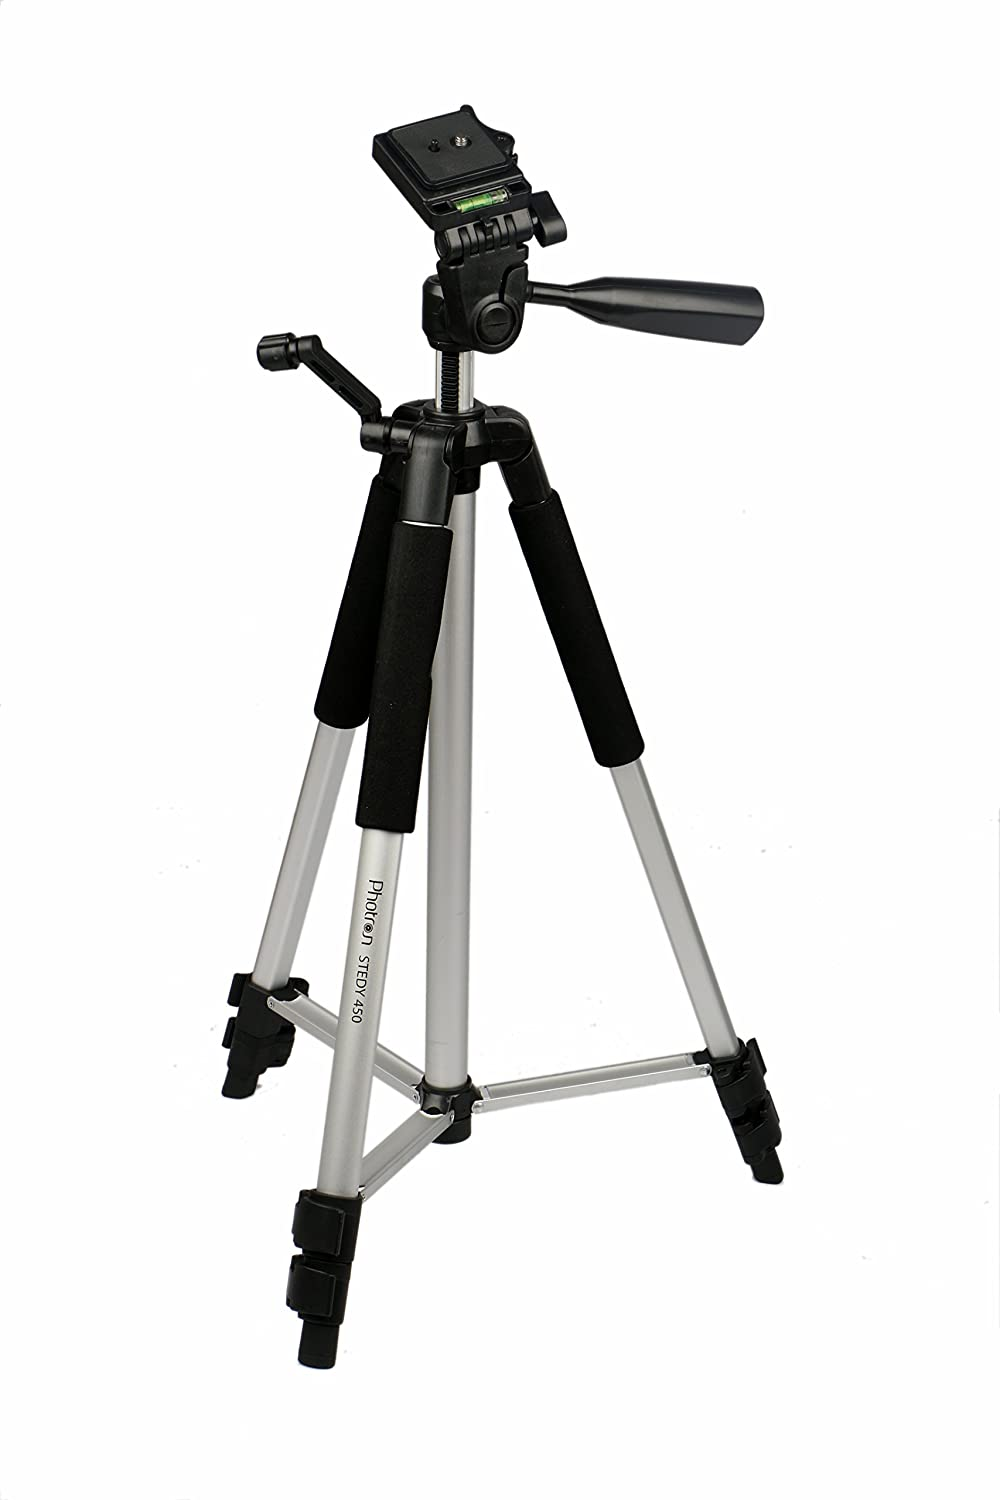 Photron Tripod Stedy 450 with Pan Head 4.5 Feet